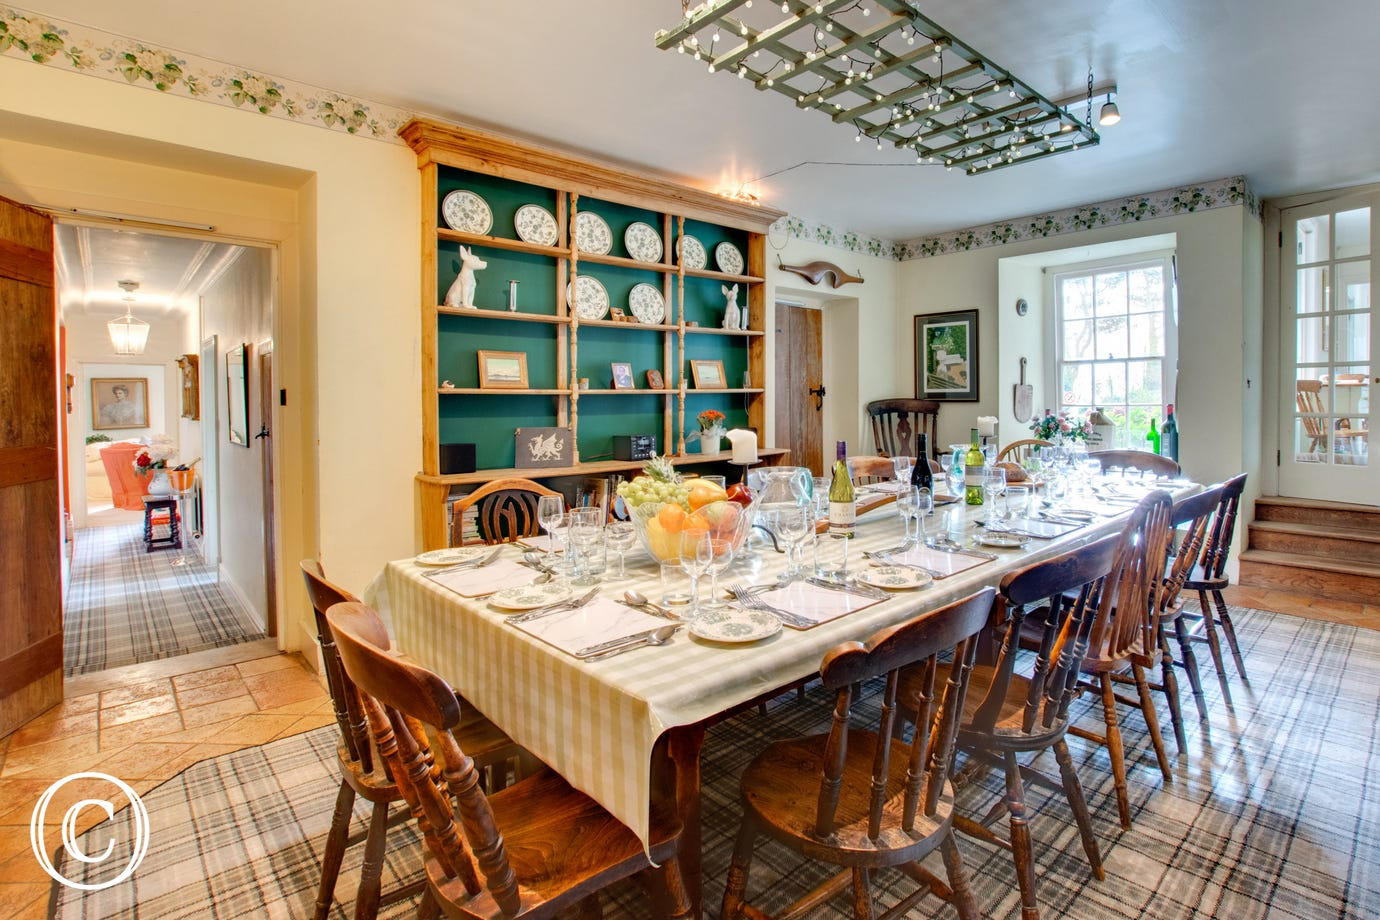 Farmhouse style dining room with four oven AGA giving a warm welcome in any season!